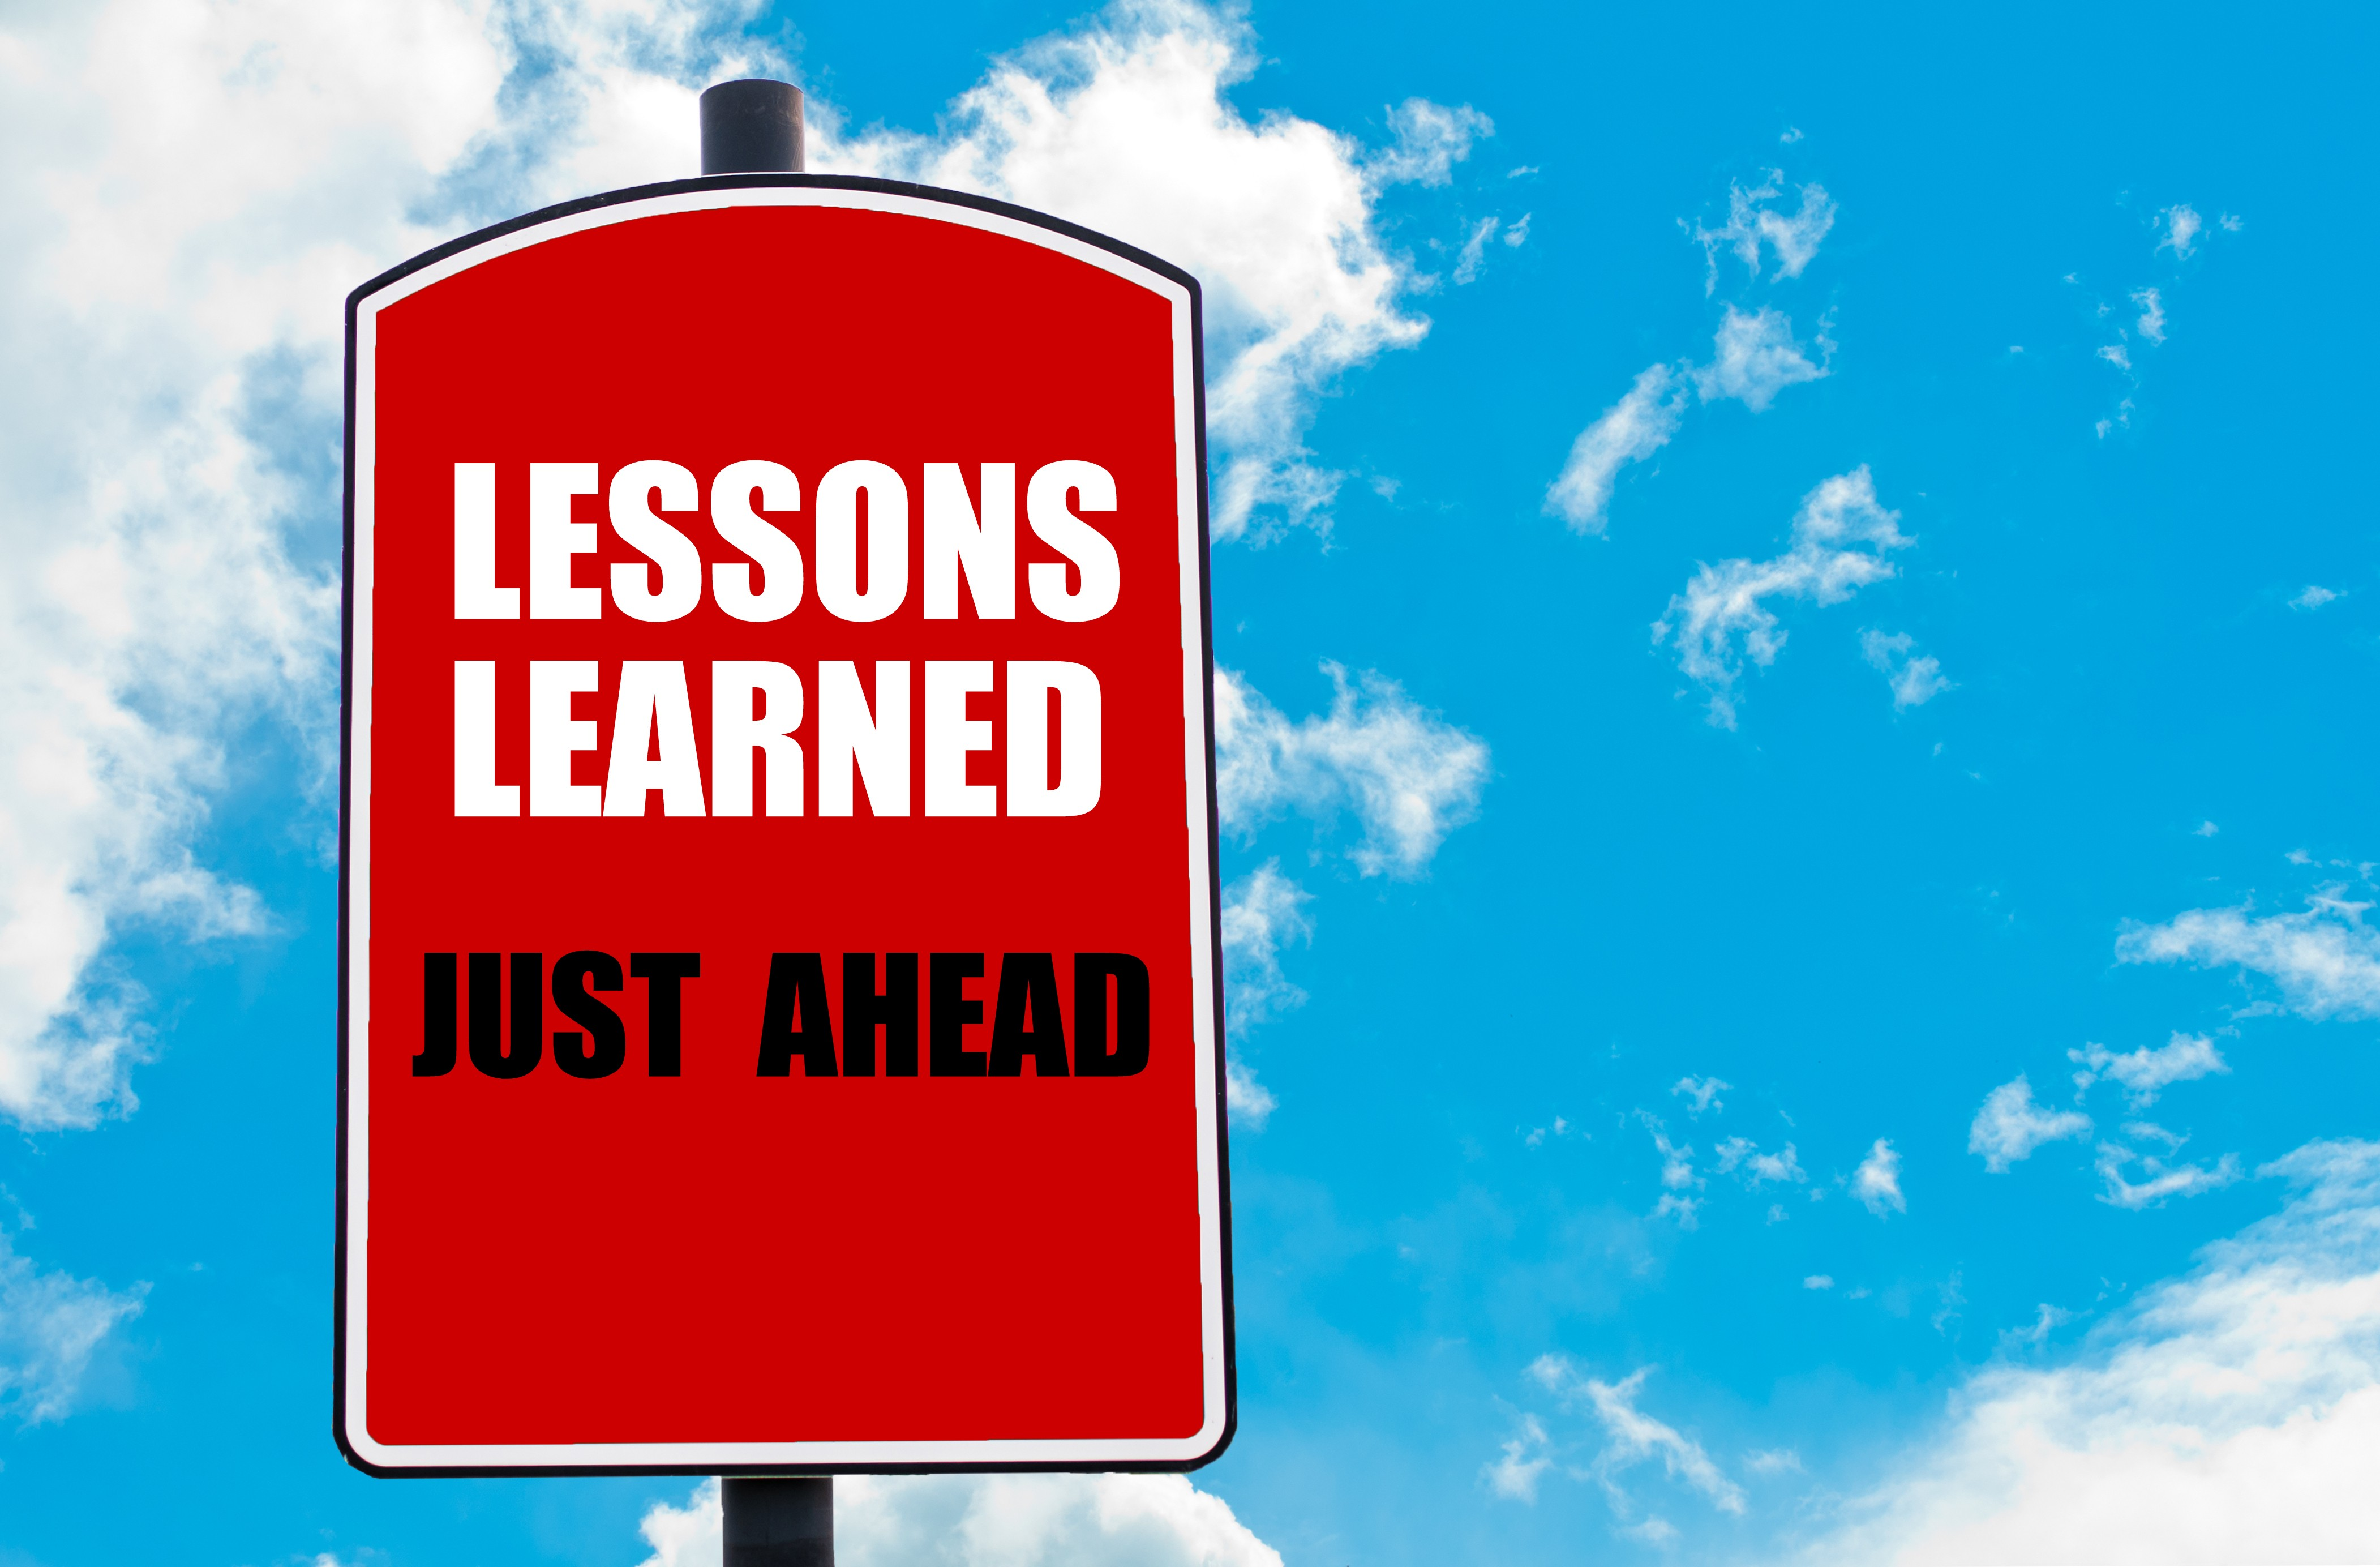 the lessons learned in my career